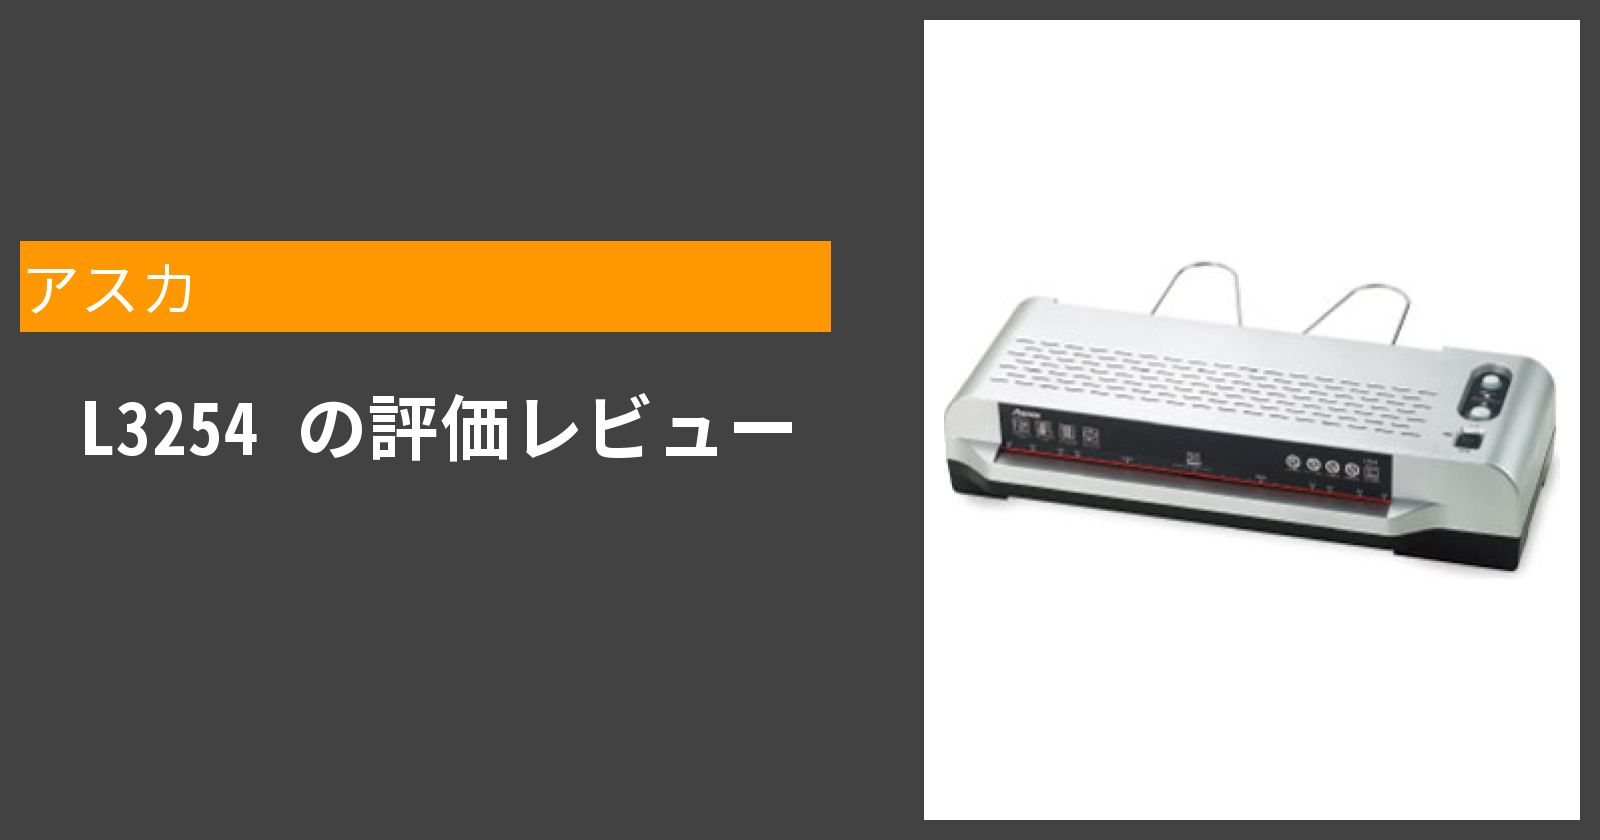 L3254を徹底評価